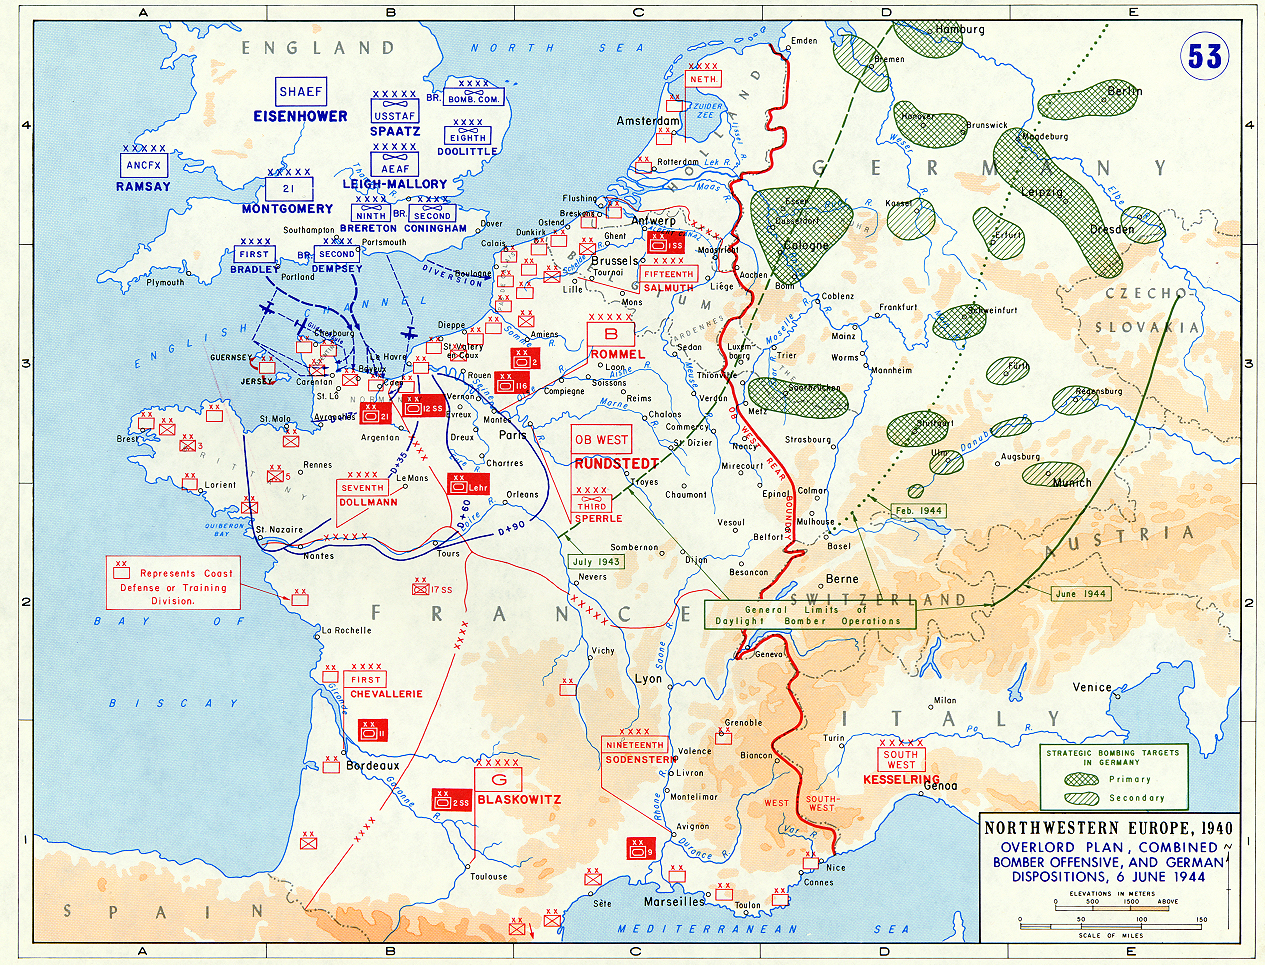 Map - Northwestern Europe, 1940